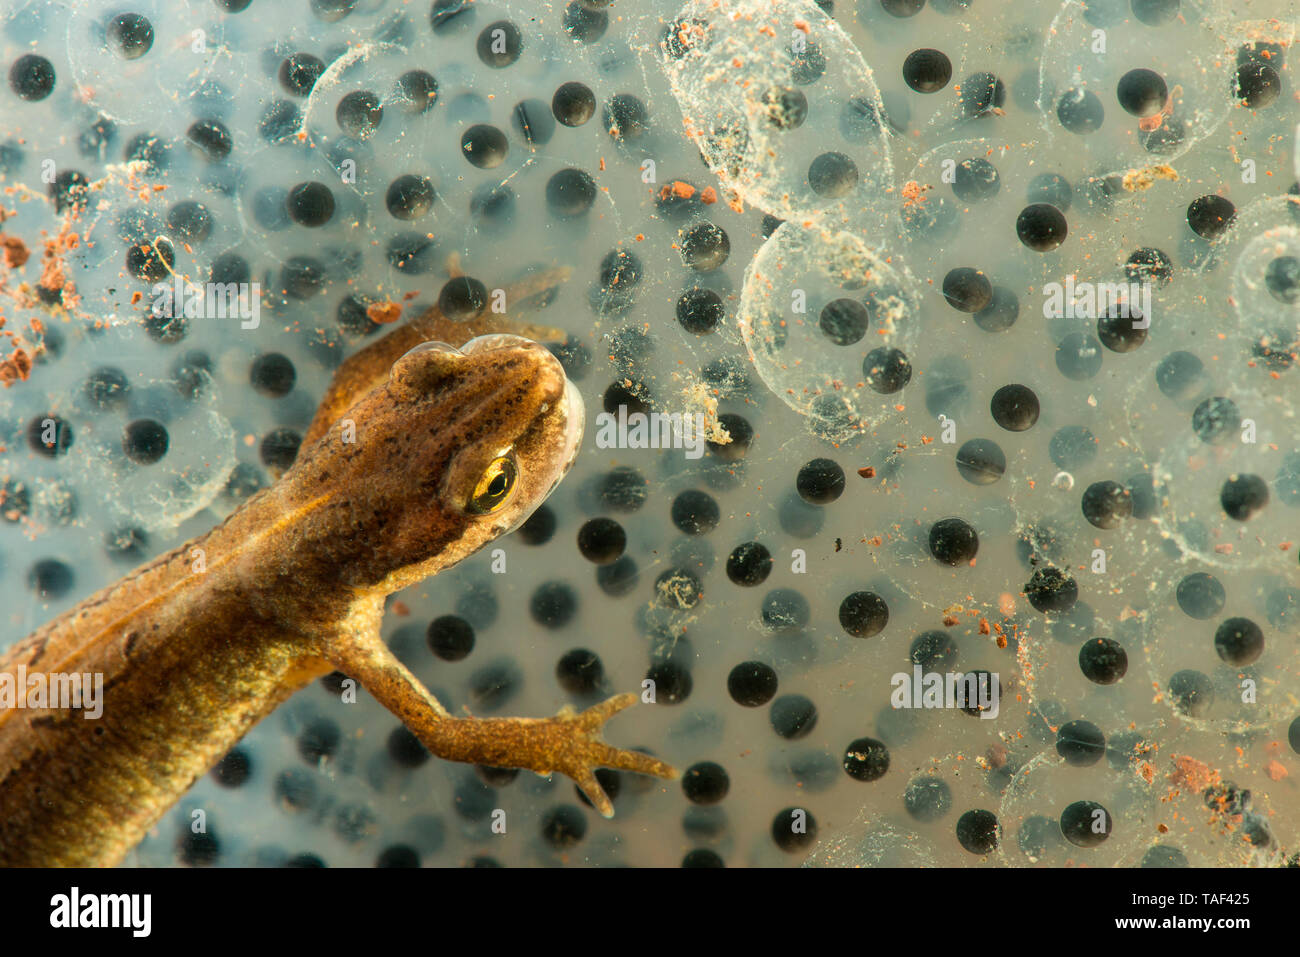 Common Newt (Lissotriton vulgaris) female eating a red-rumped frog, Saulxures-les-Nancy, Lorraine, France - Stock Image